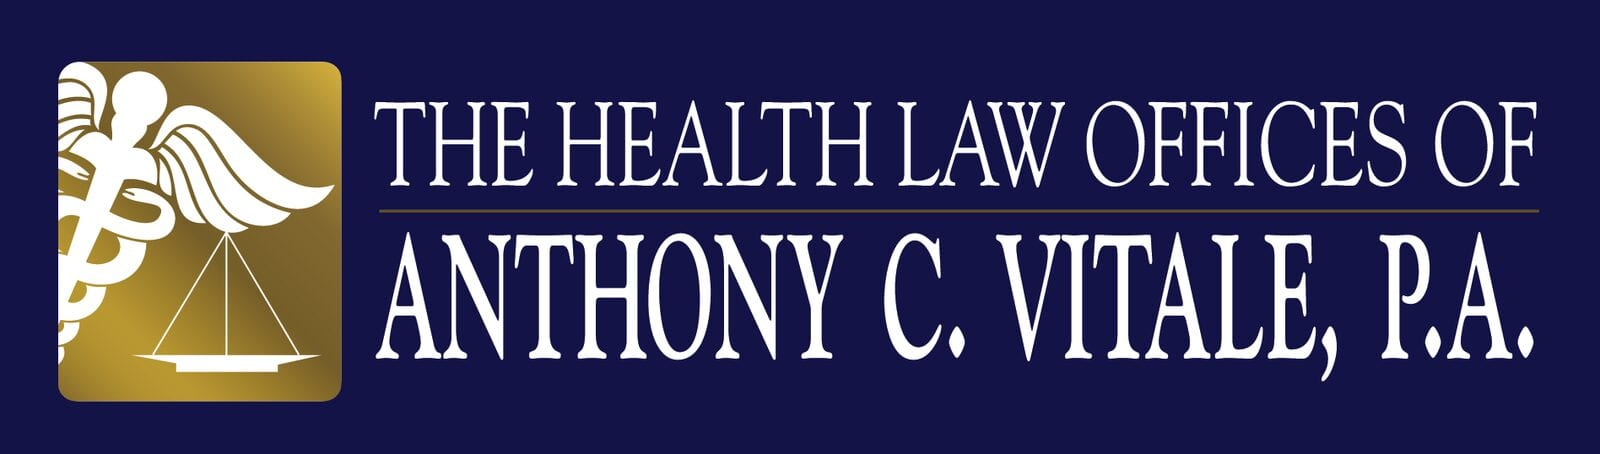 Health Law Offices of Anthony C. Vitale logo